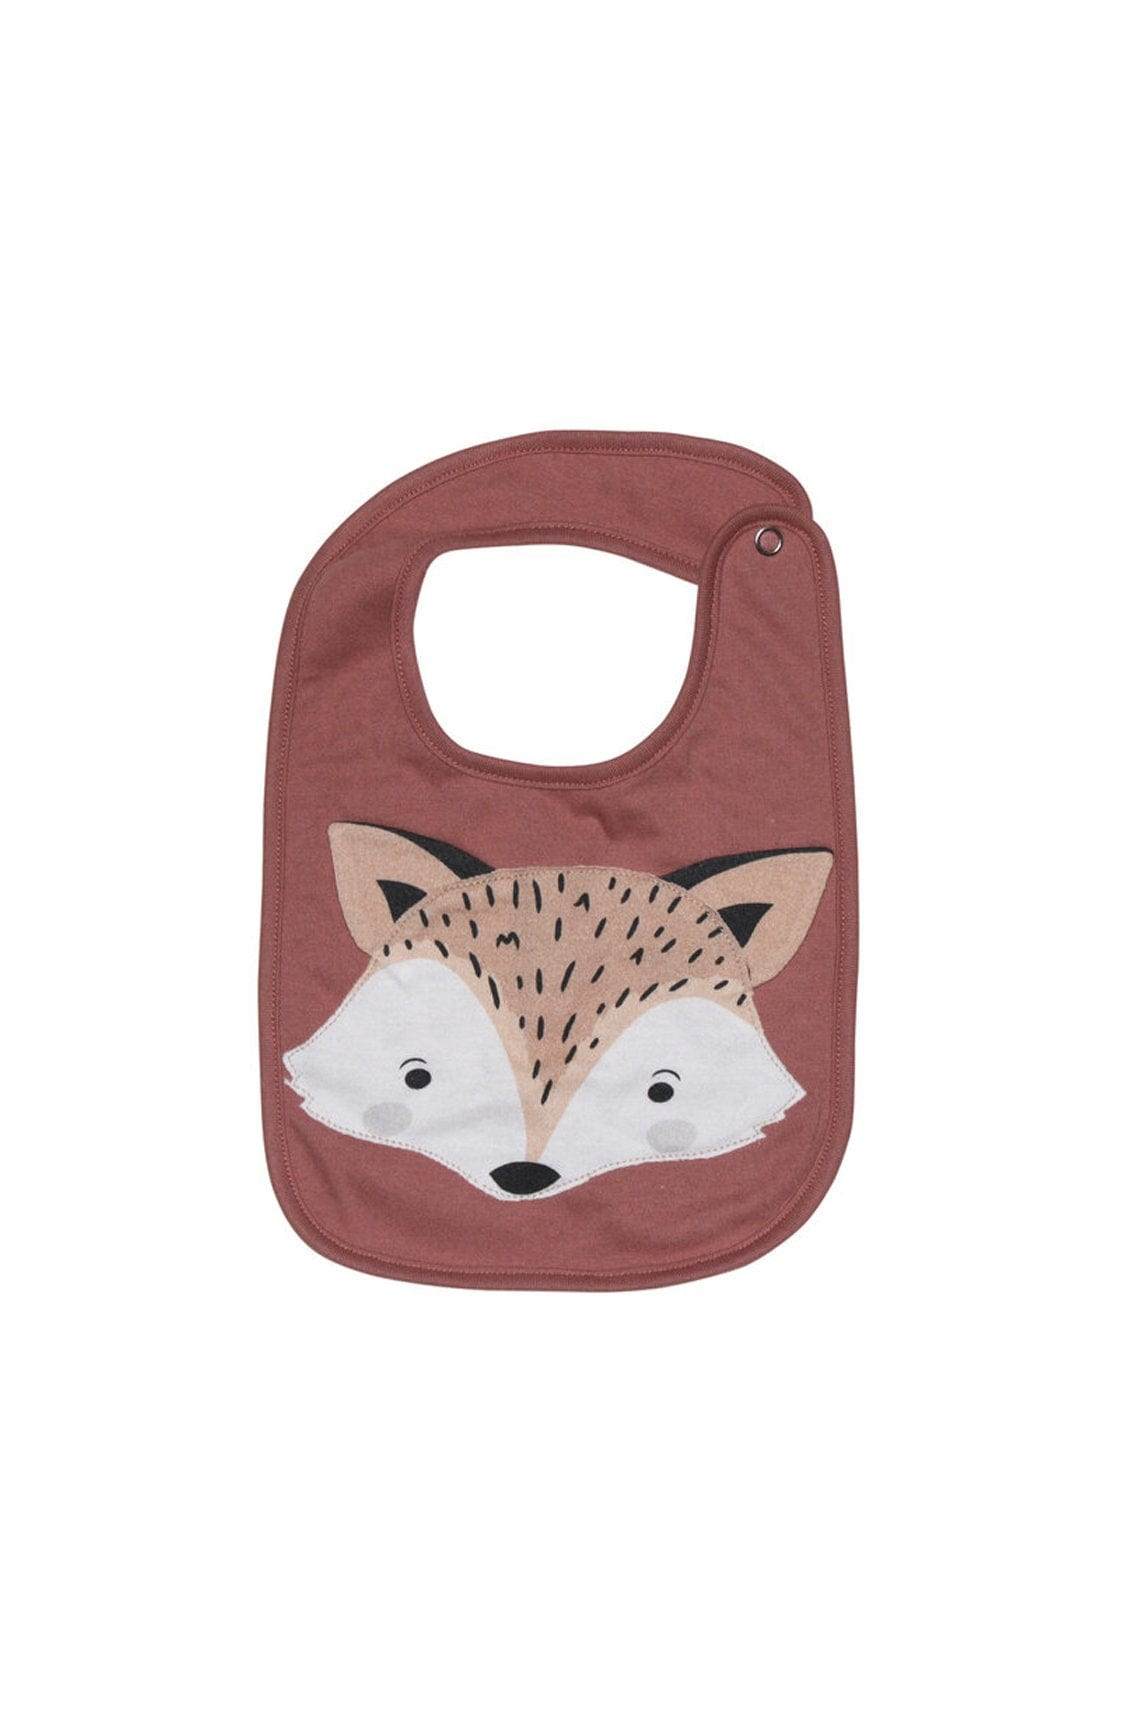 Mister Fly Fox Face Bib - Hello Little Birdie